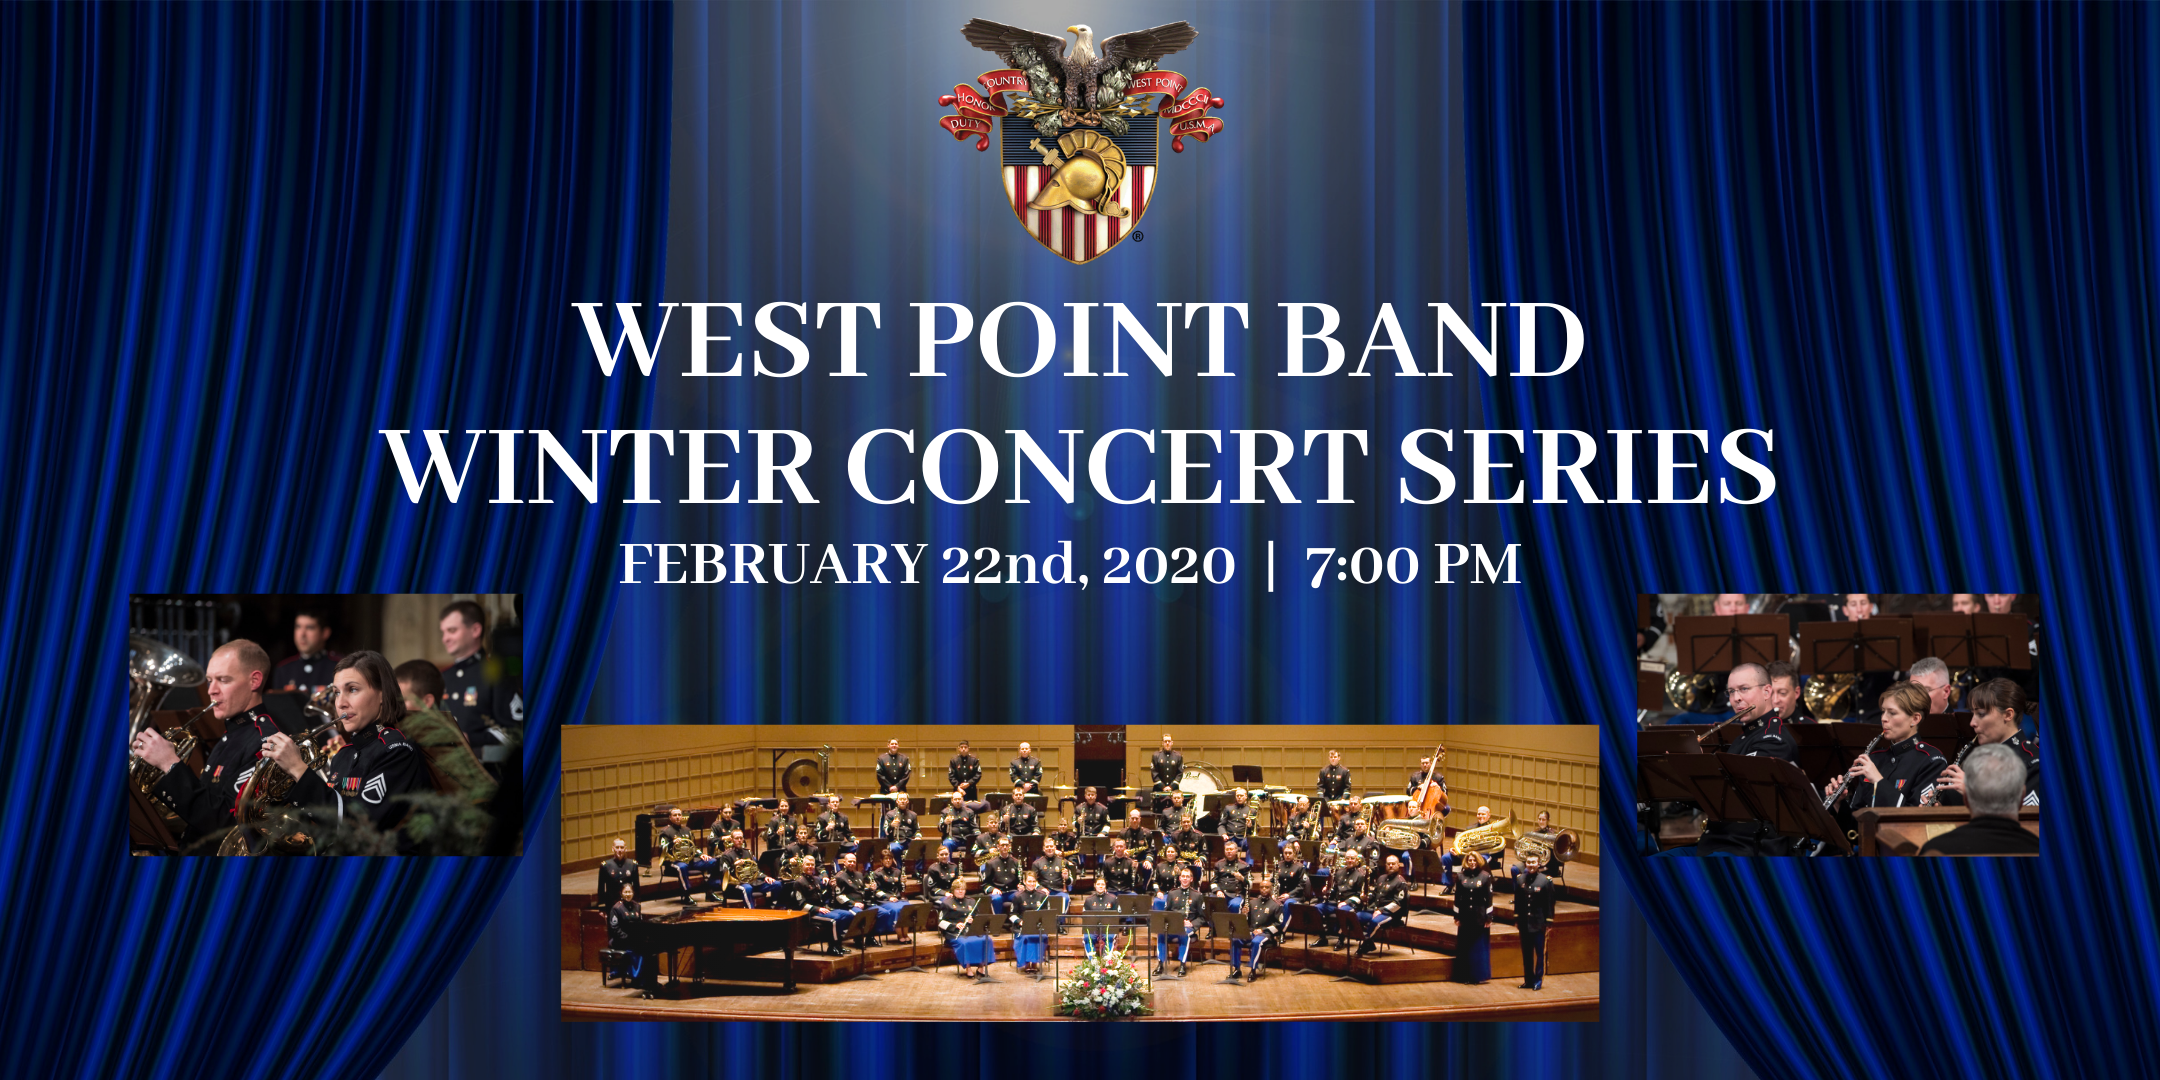 Today Show Concert Series 2020.West Point Band Winter Concert Series